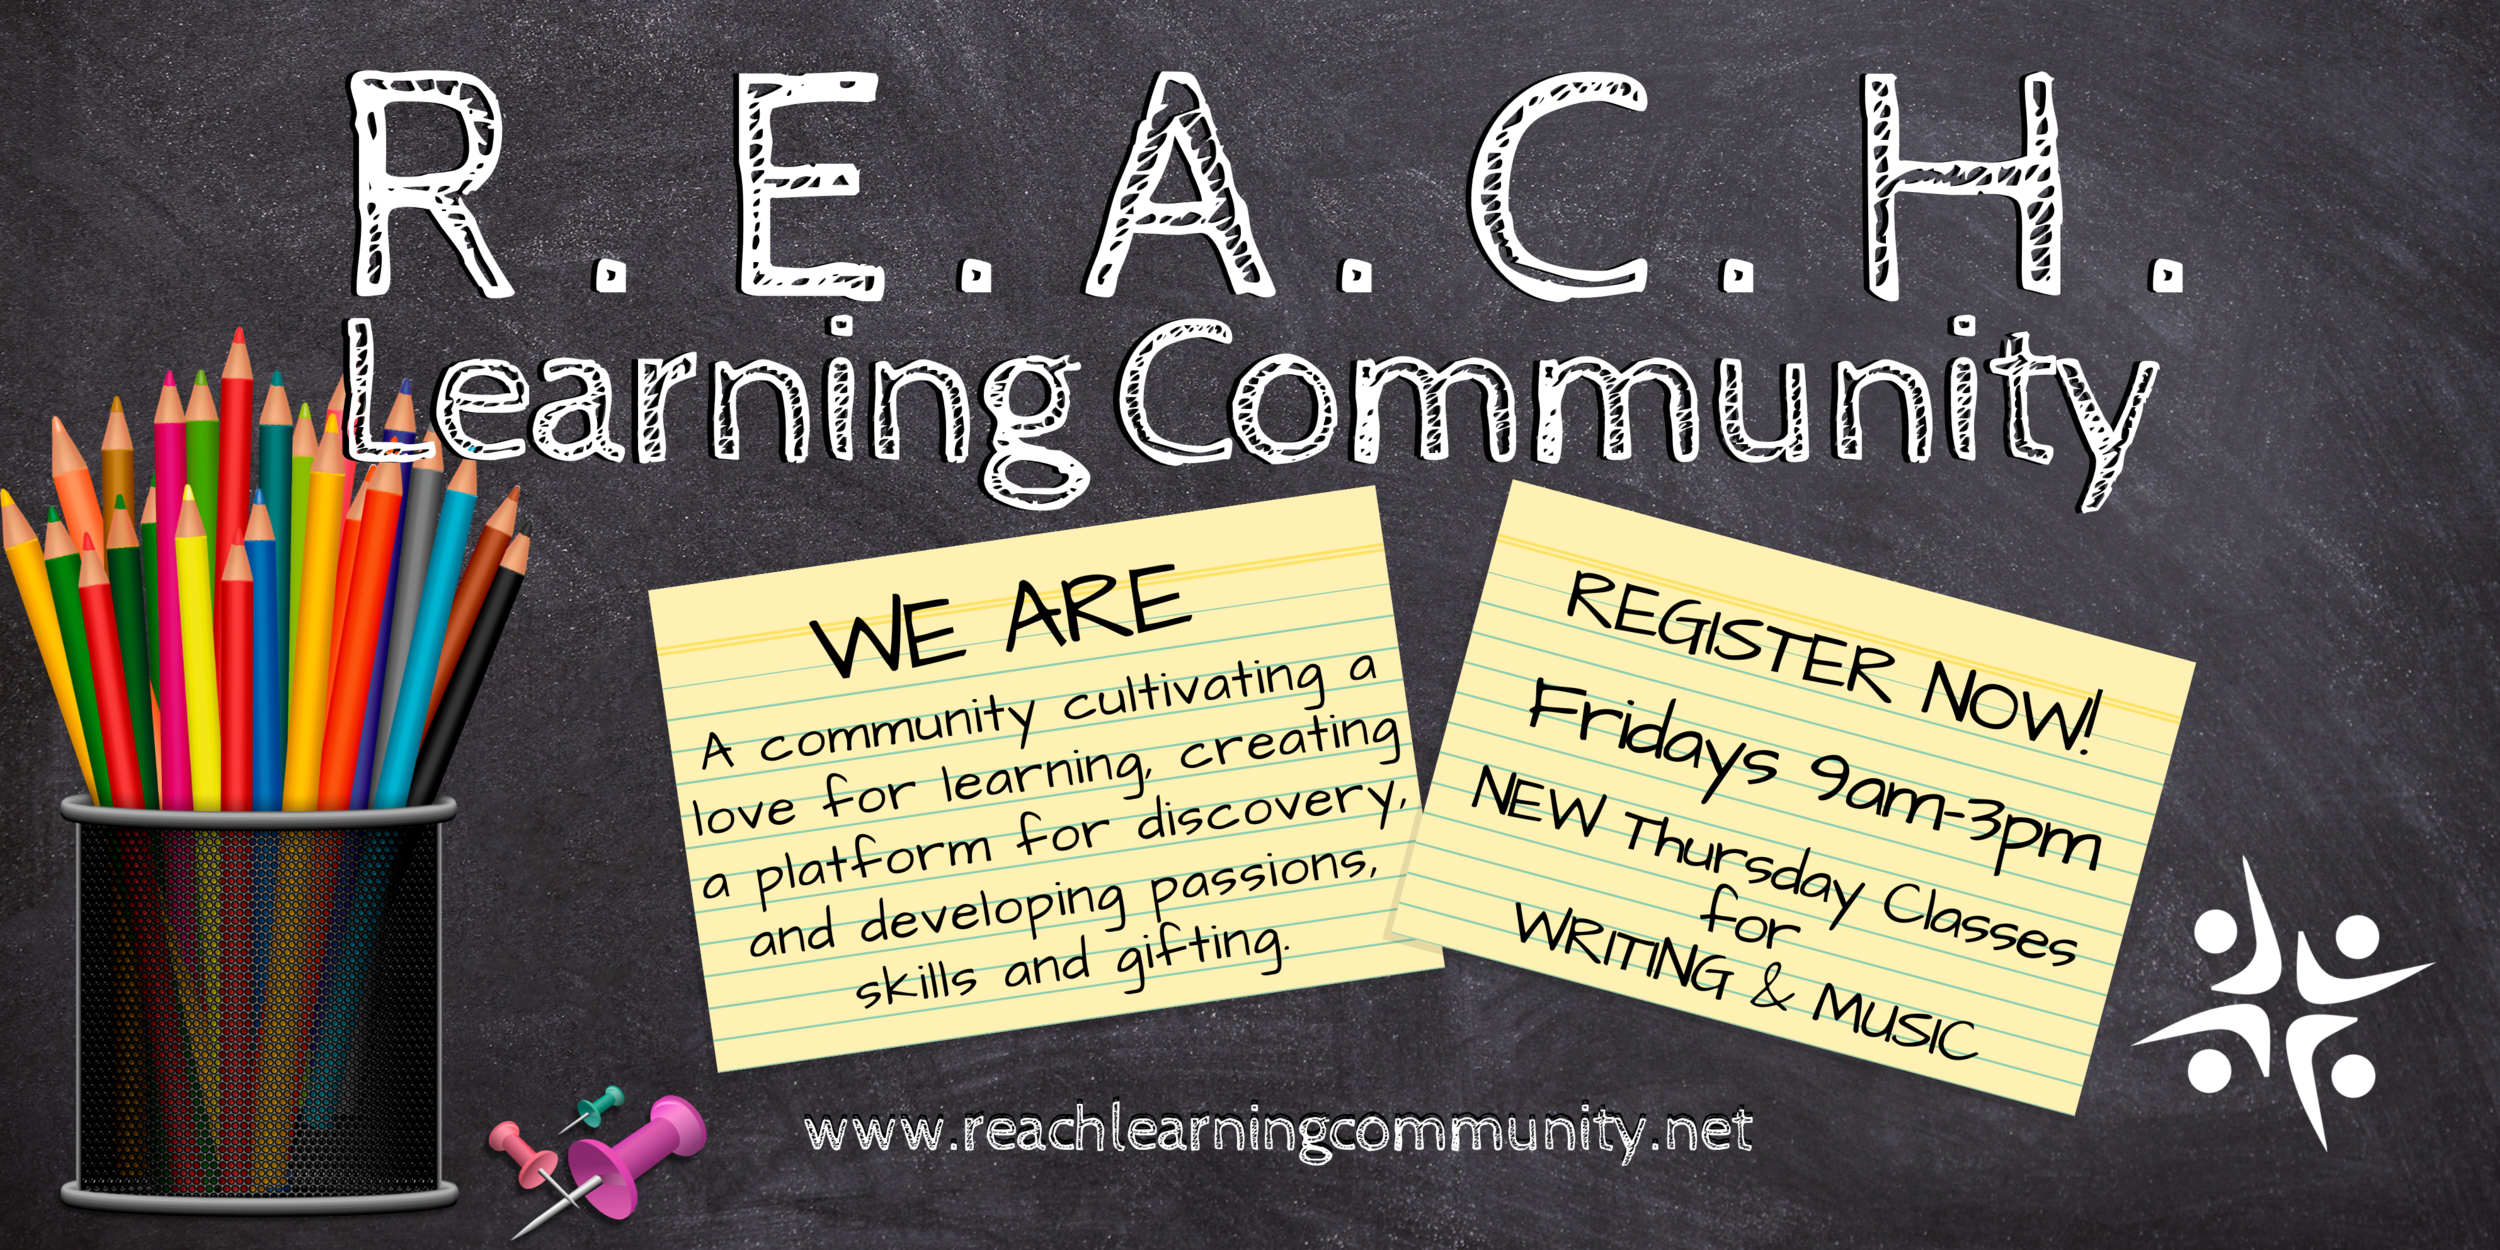 REACH Learning Community Covington Louisiana Homeschool Community Project Based Learning Register for 2019/2020 academic year programs